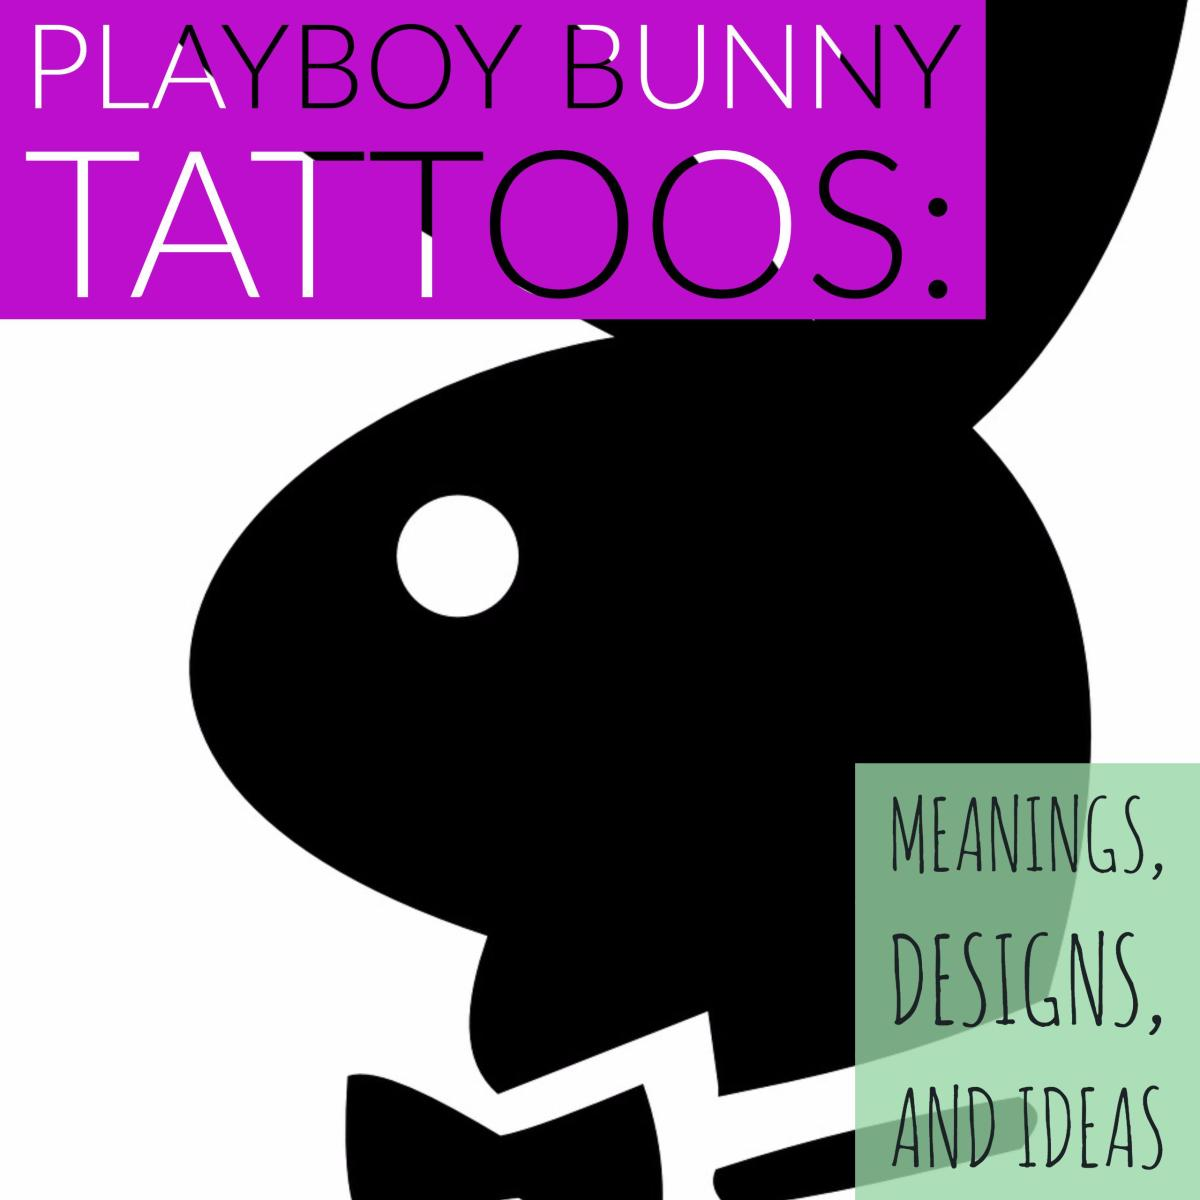 Playboy Bunny Tattoos: Meanings, Designs, and Ideas